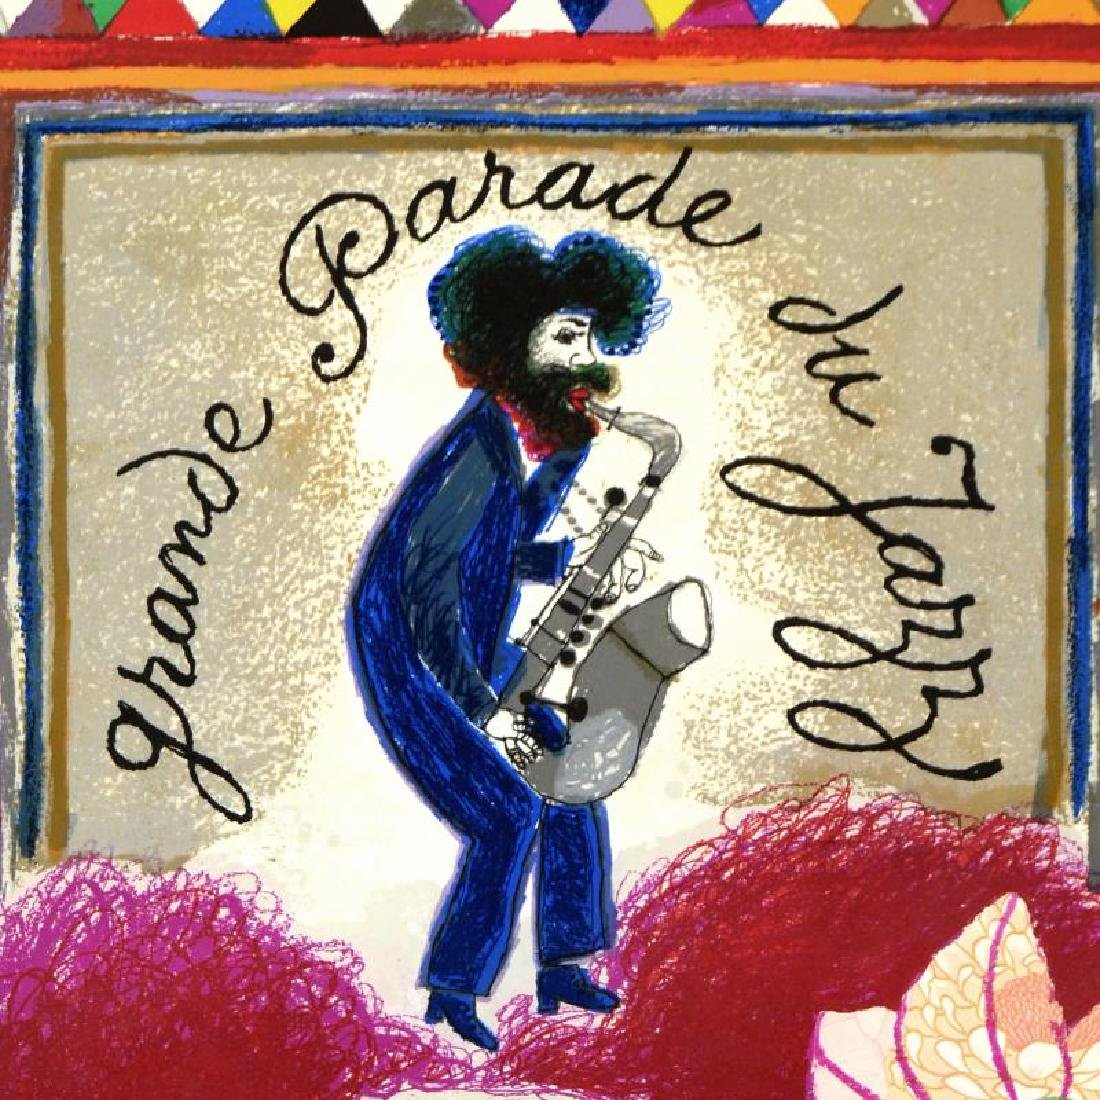 Grande Parade Du Jazz by Tobiasse (1927 - 2012) - 2